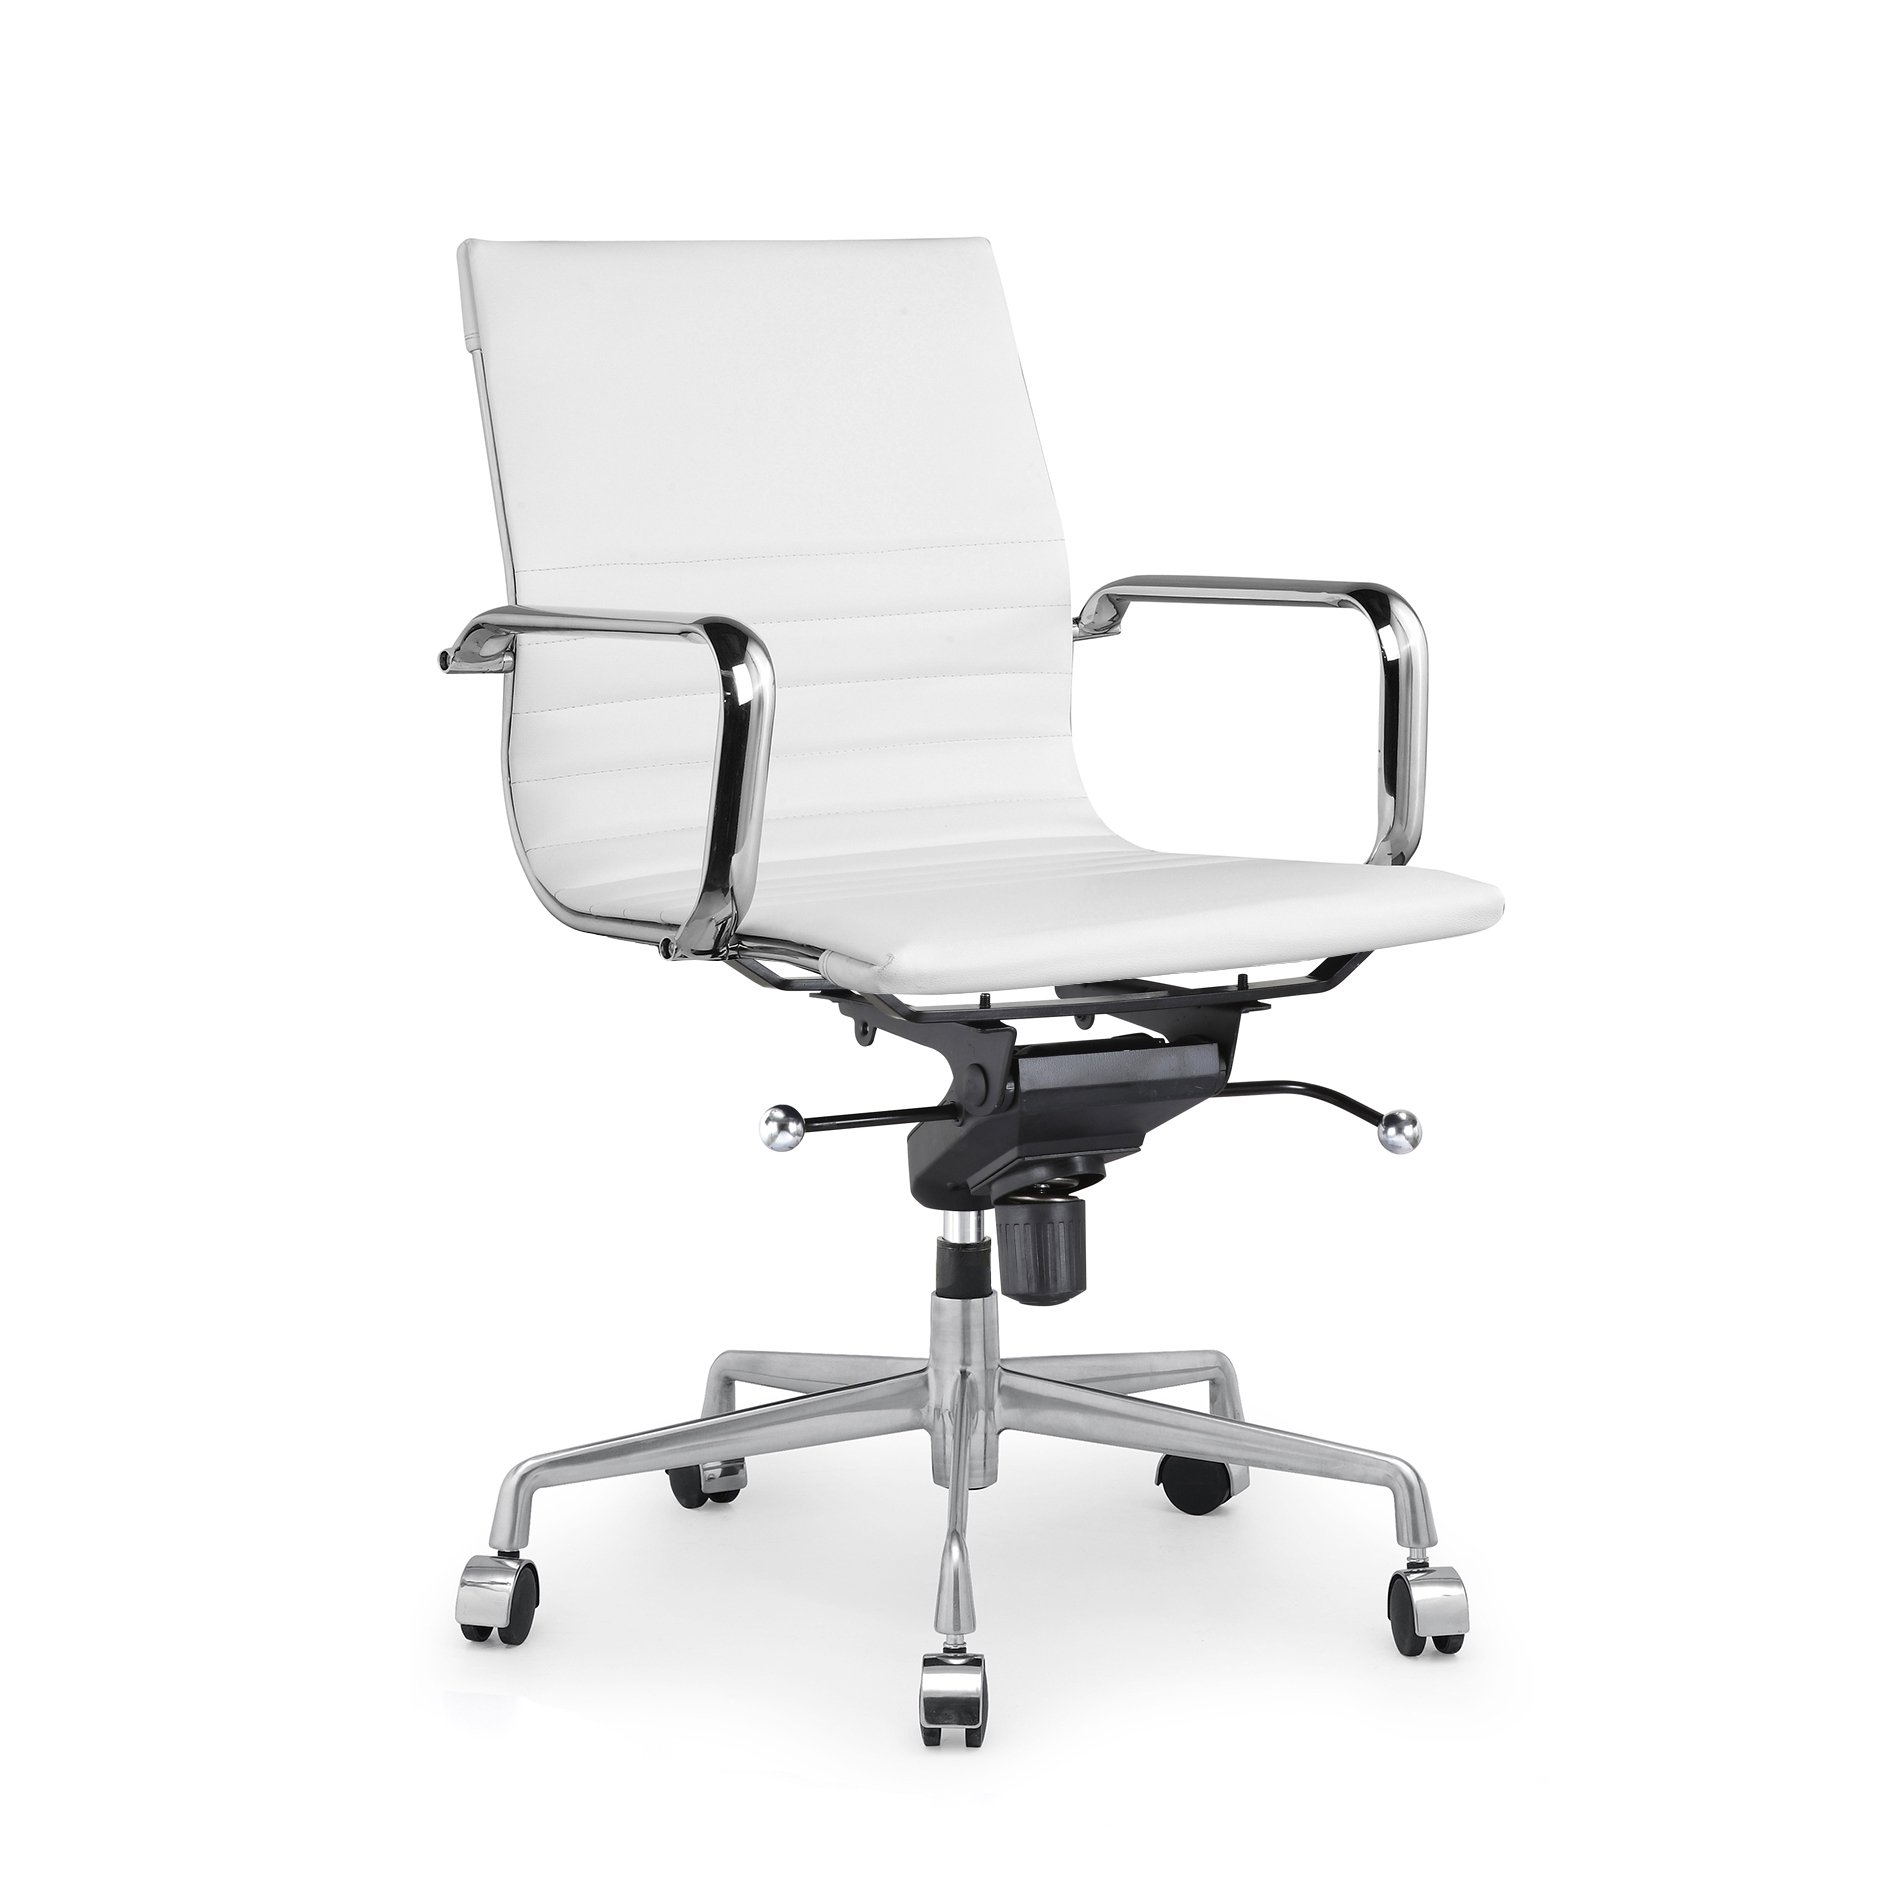 Design Lab MN LS-0009-WHTCRM Modern White Office Chairs, Set of 2,